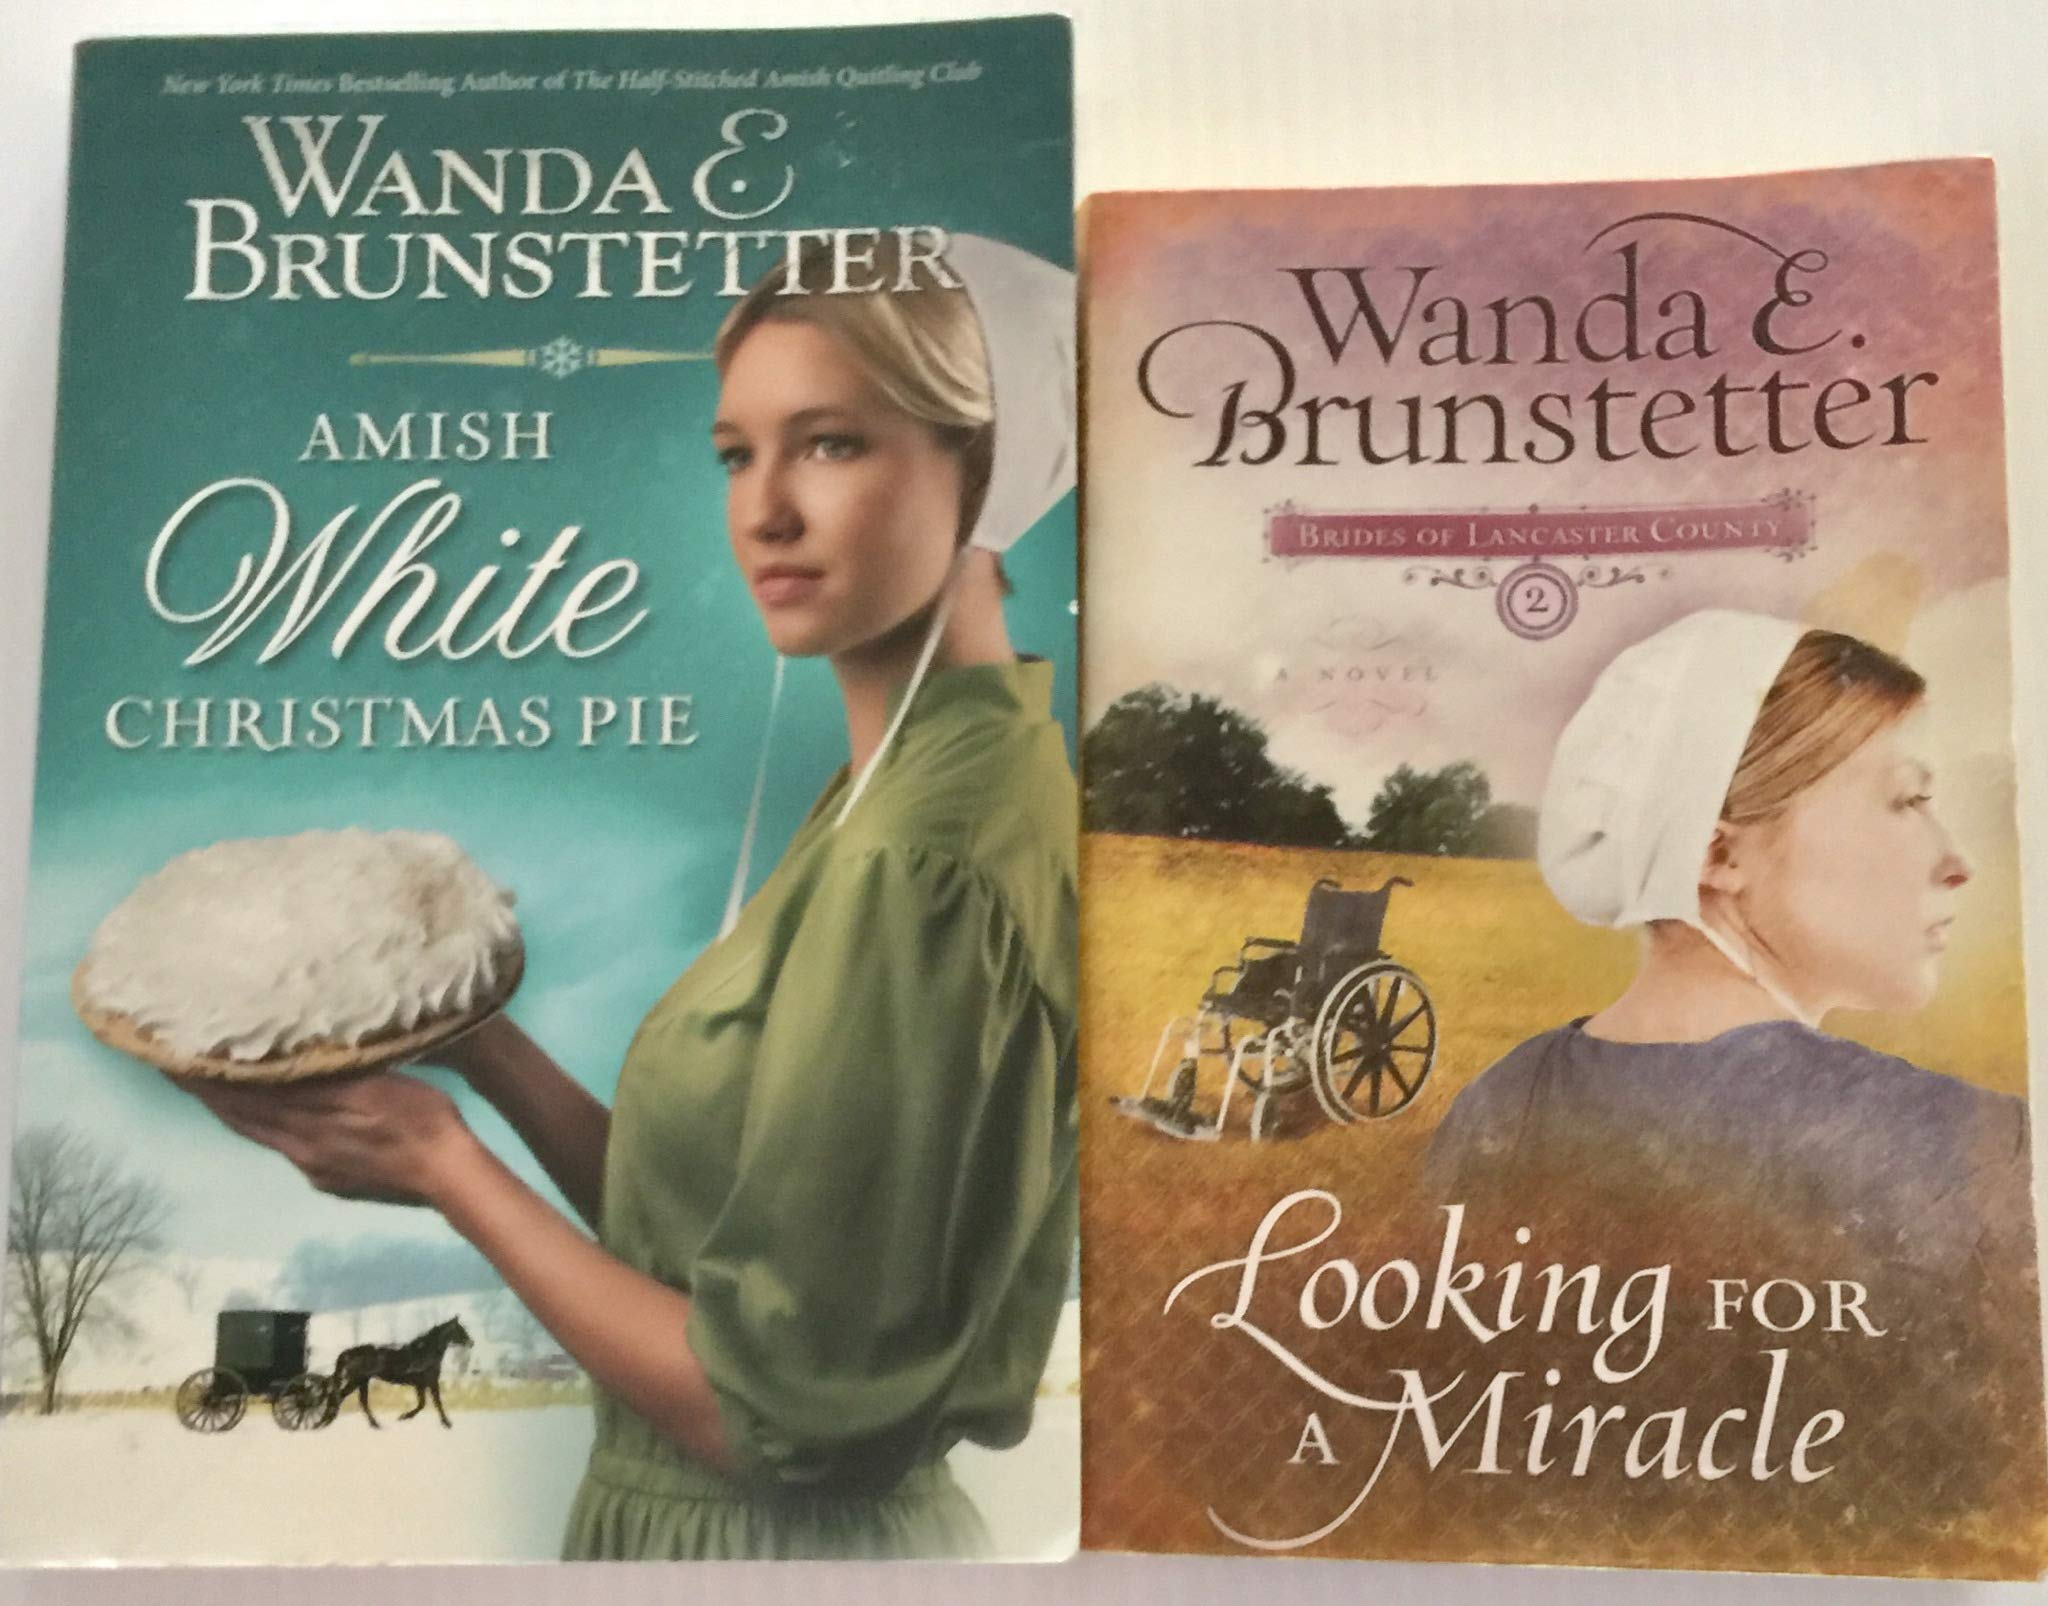 White Christmas Pie.2 Books 1 Amish White Christmas Pie 2 Looking For A